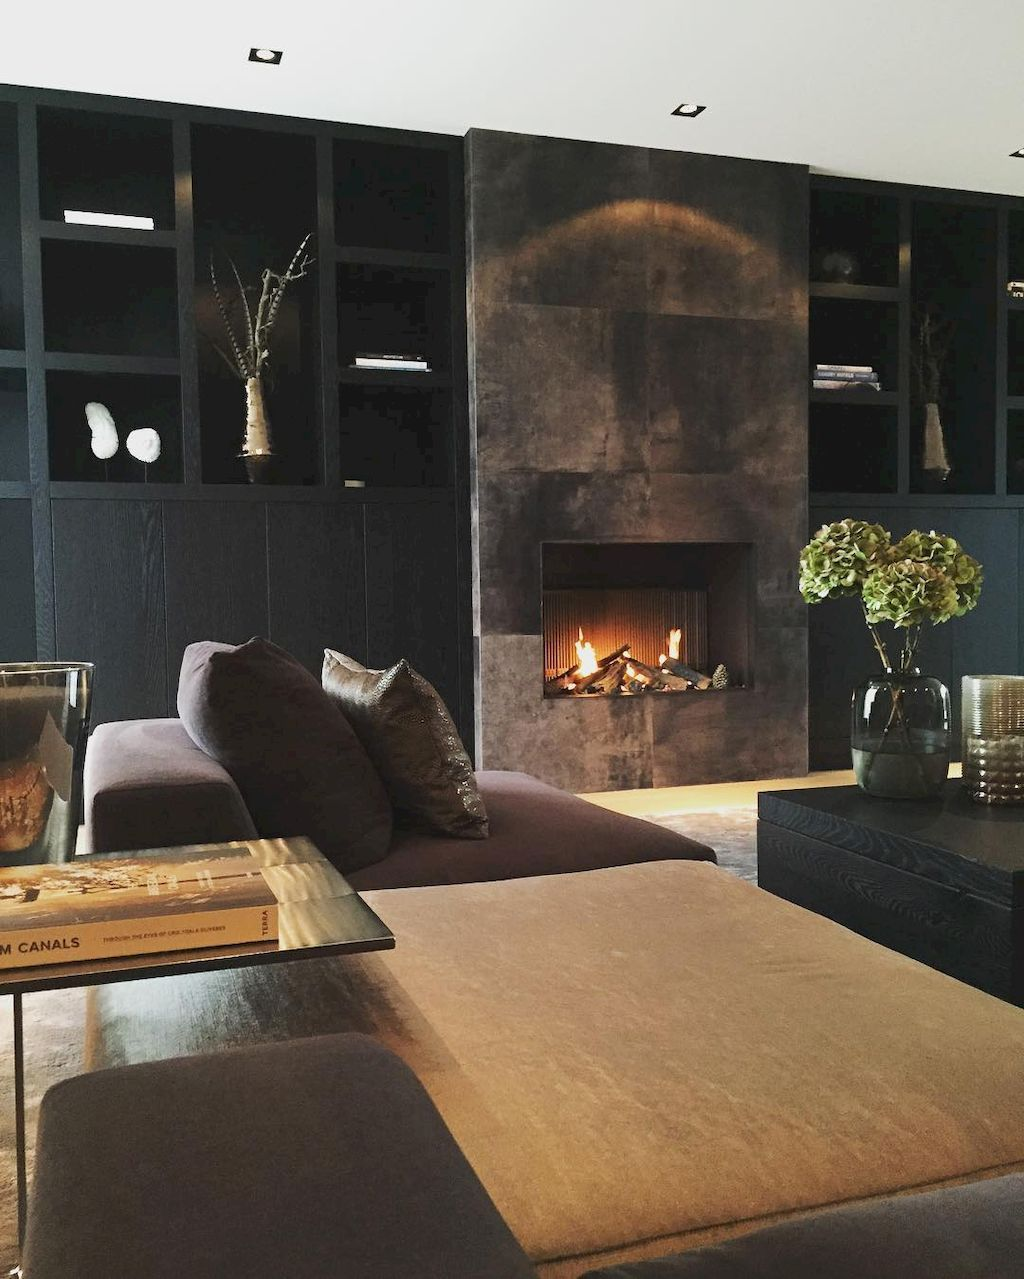 Inspiring Fireplace Ideas For Your Living Room 43  Living Rooms New Interior Design Ideas For Living Rooms With Fireplace Review